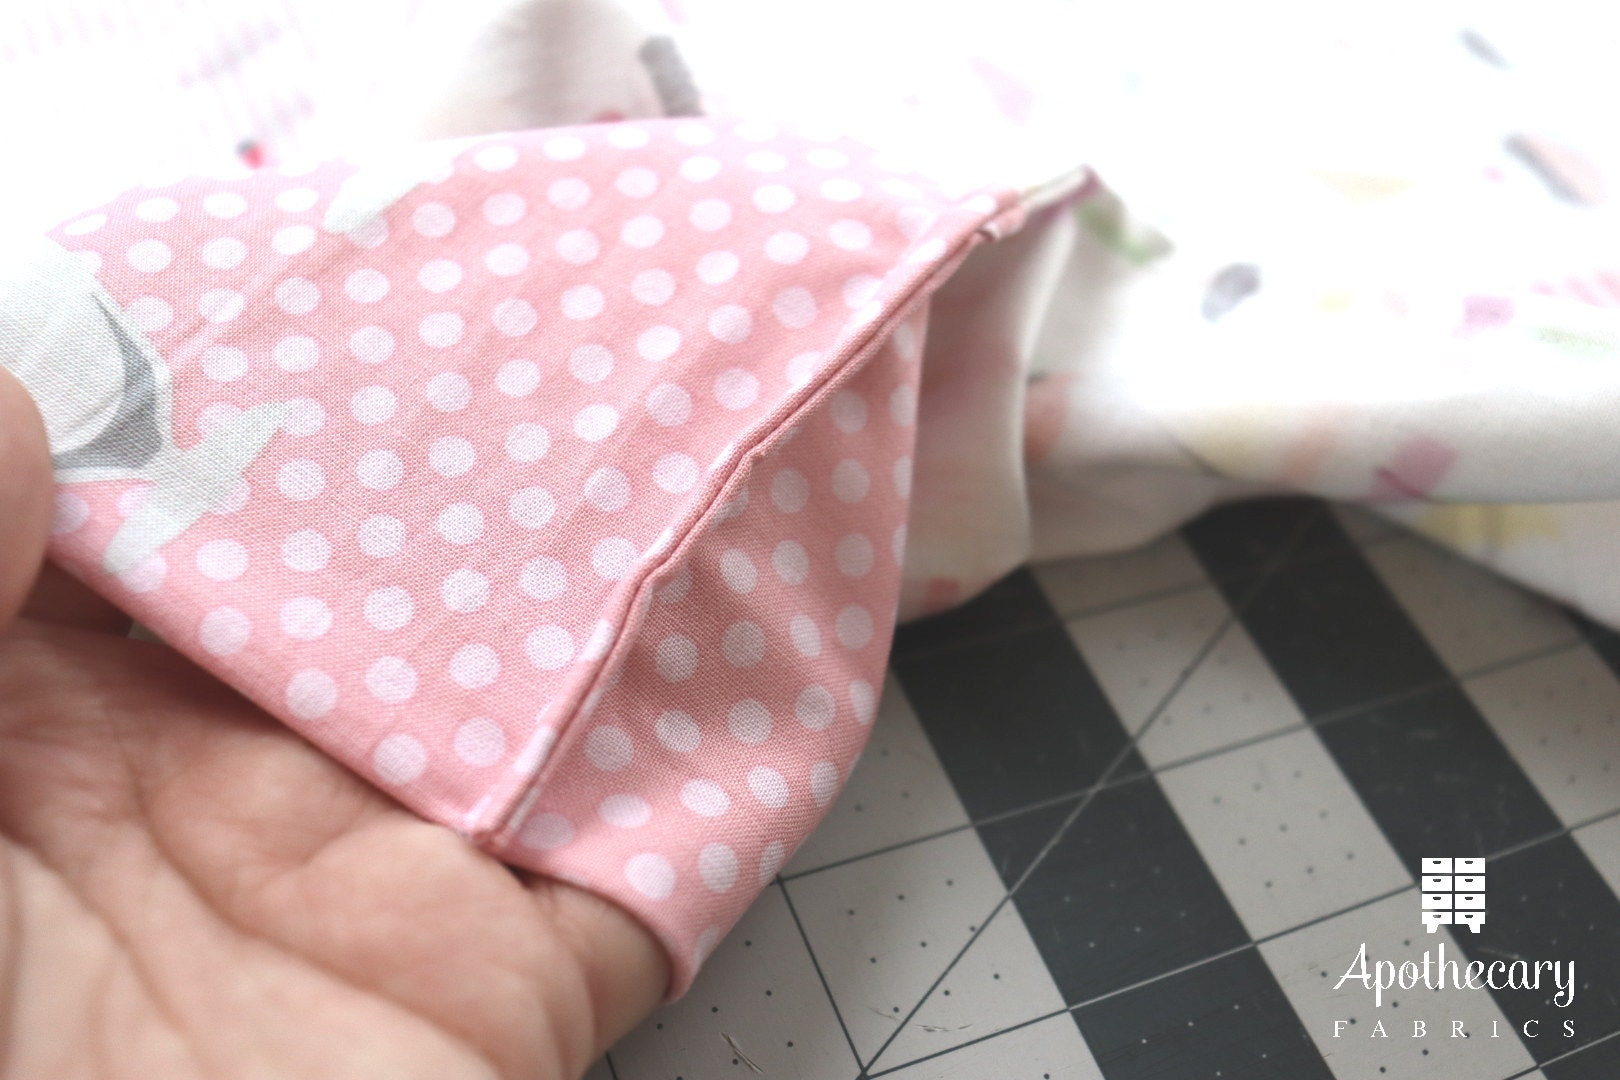 The view of the French Seam from the interior of the Perfect Pillowcase.